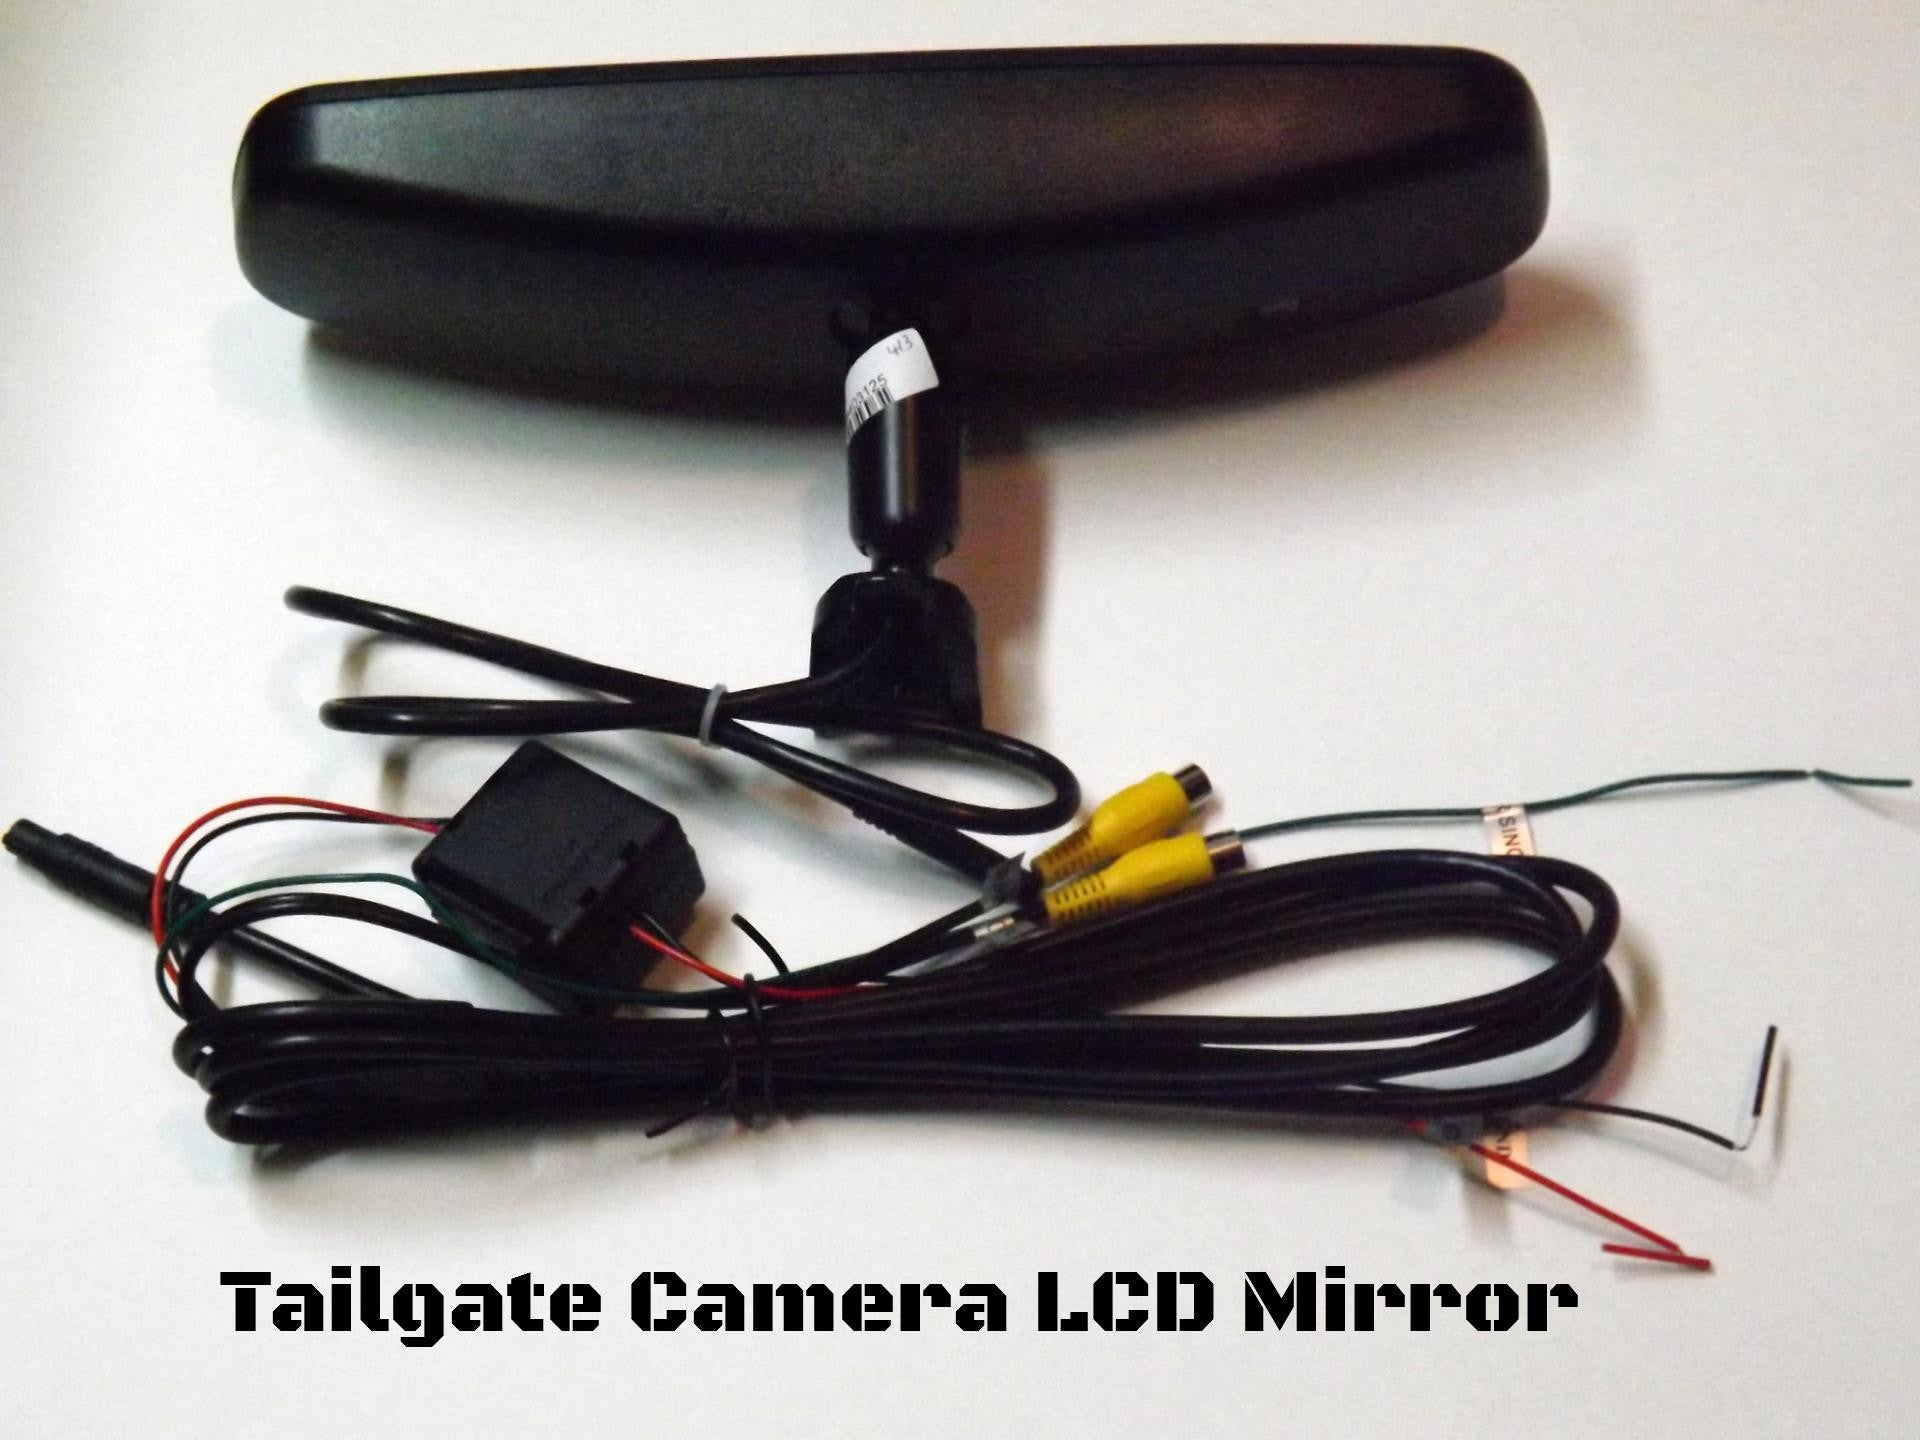 Oem Replacement Rear View Mirror With Hd 43 Lcd Display For Back 2015 Gm Wiring Diagram Up Camera